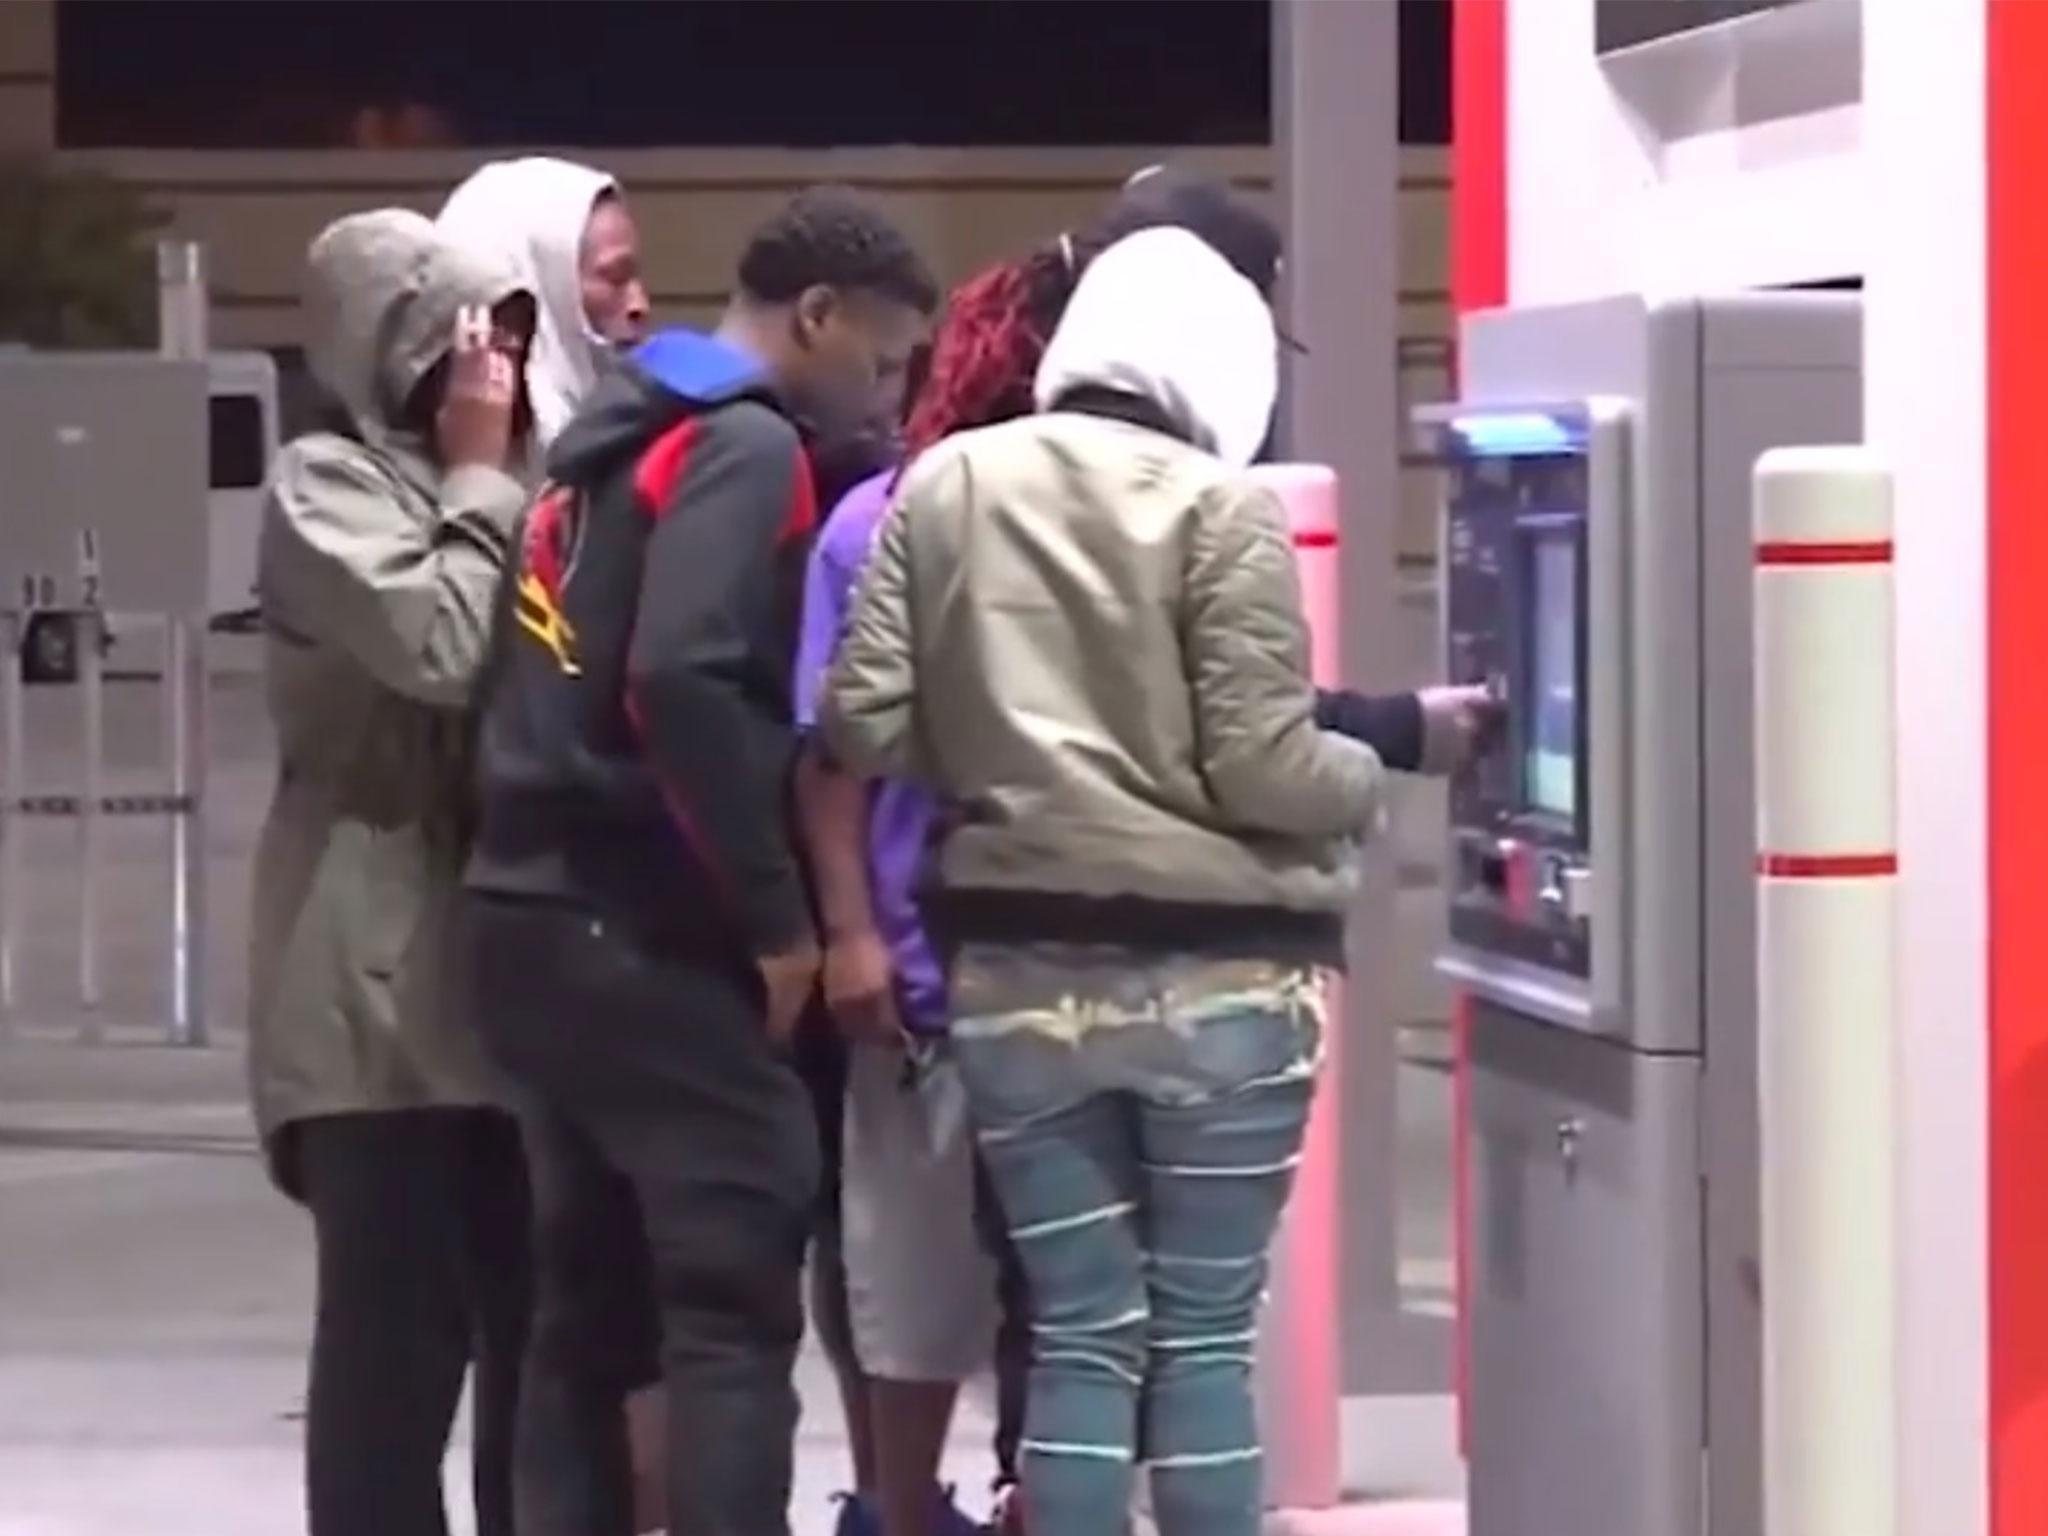 Texas ATM begins spitting out $100 bills, sparking fight